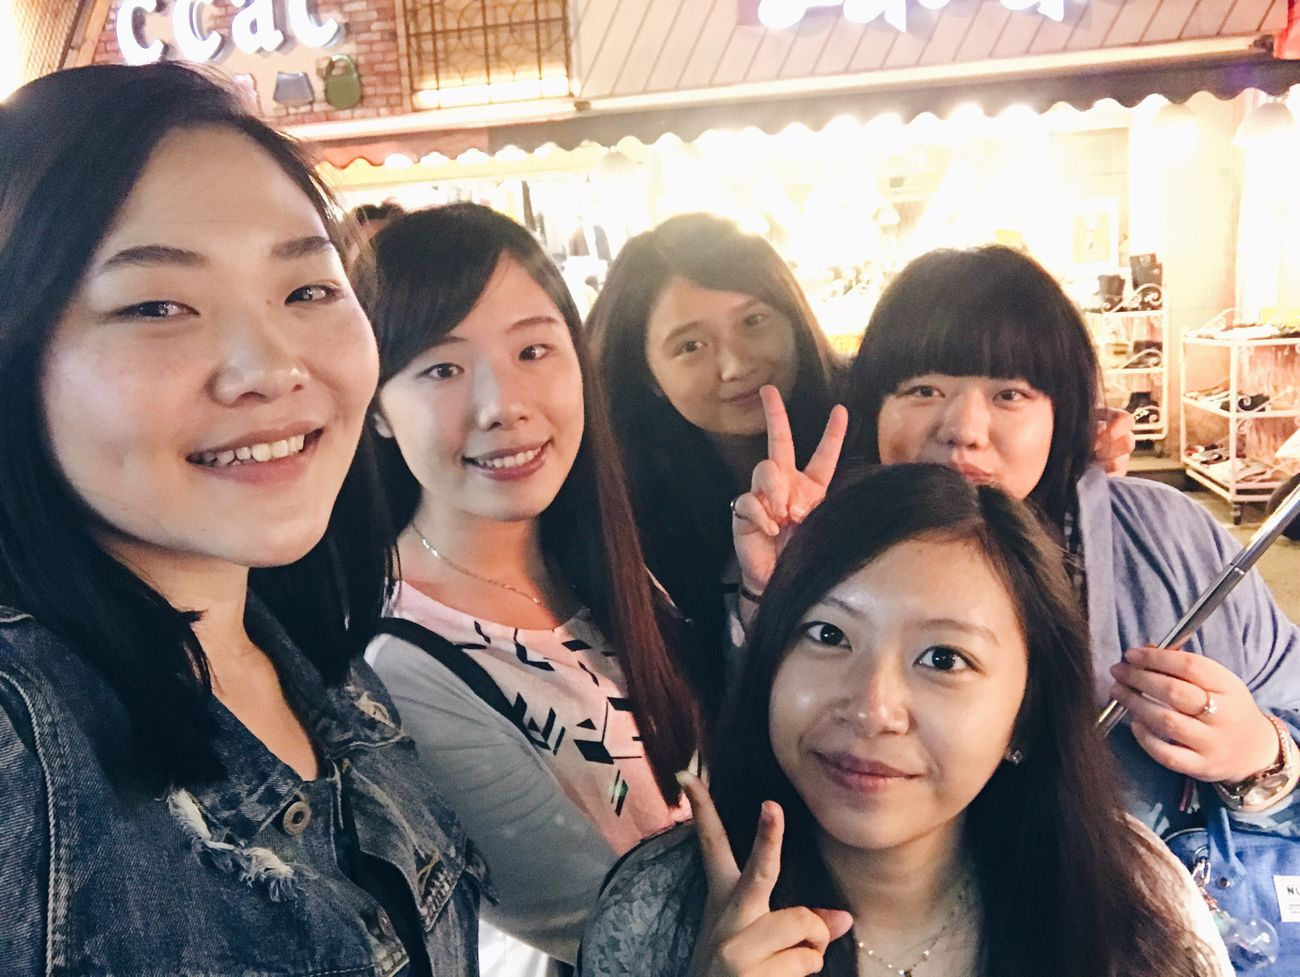 20161030 Friendship Nightmarket Hello World Taiwan Kate's Daily Yolo VSCO EyeEm Vscocam Enjoying Life Beauty Photography Women Relaxing Outdoors Hanging Out Happiness Taking Photos